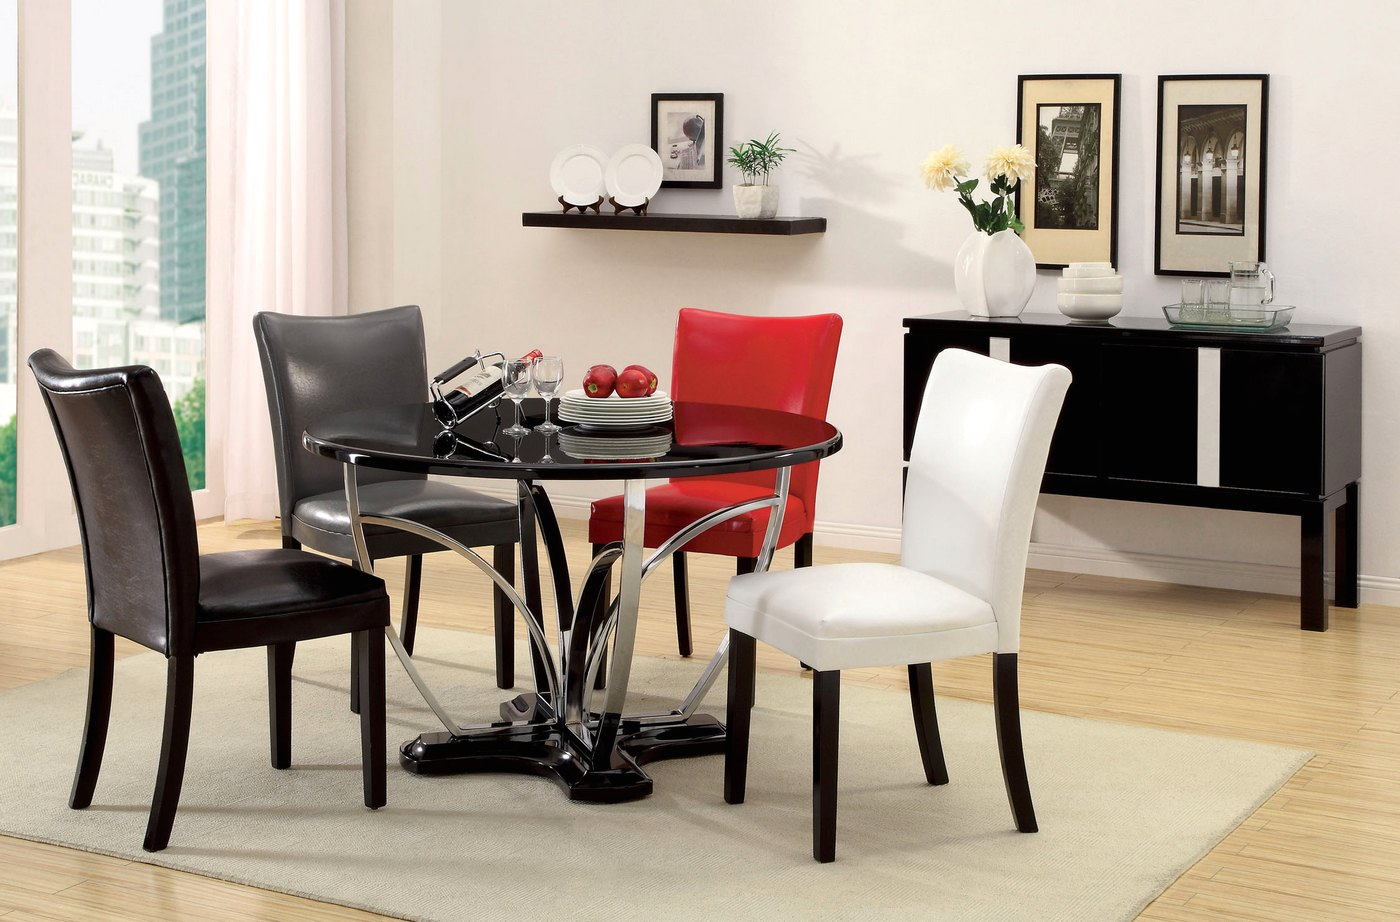 belliz contemporary black lacquer table casual dining set with leatherette parson chair cm3177bk. Black Bedroom Furniture Sets. Home Design Ideas